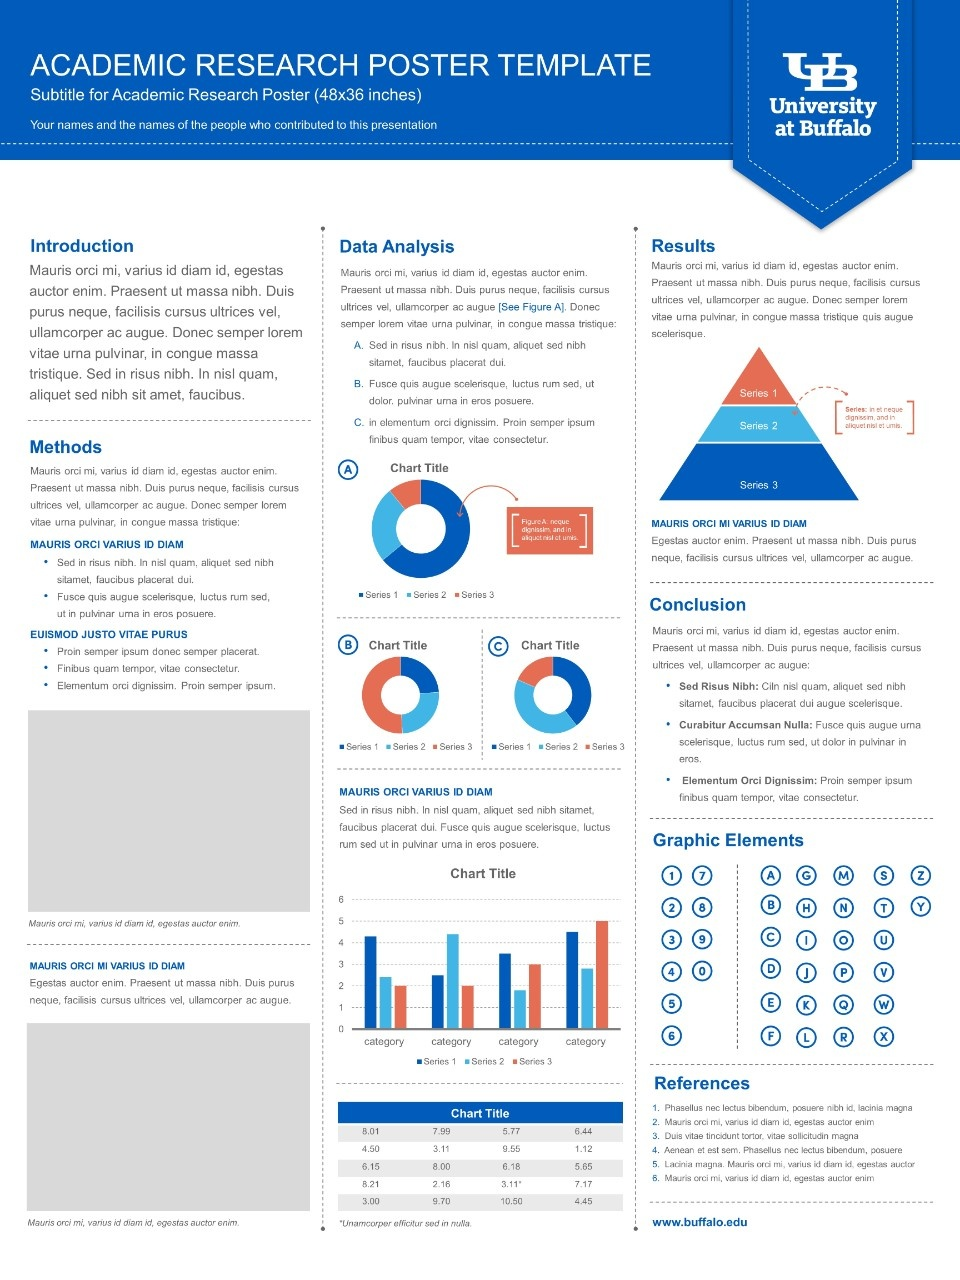 Presentation templates university at buffalo school of social work poster presentation vertical toneelgroepblik Images